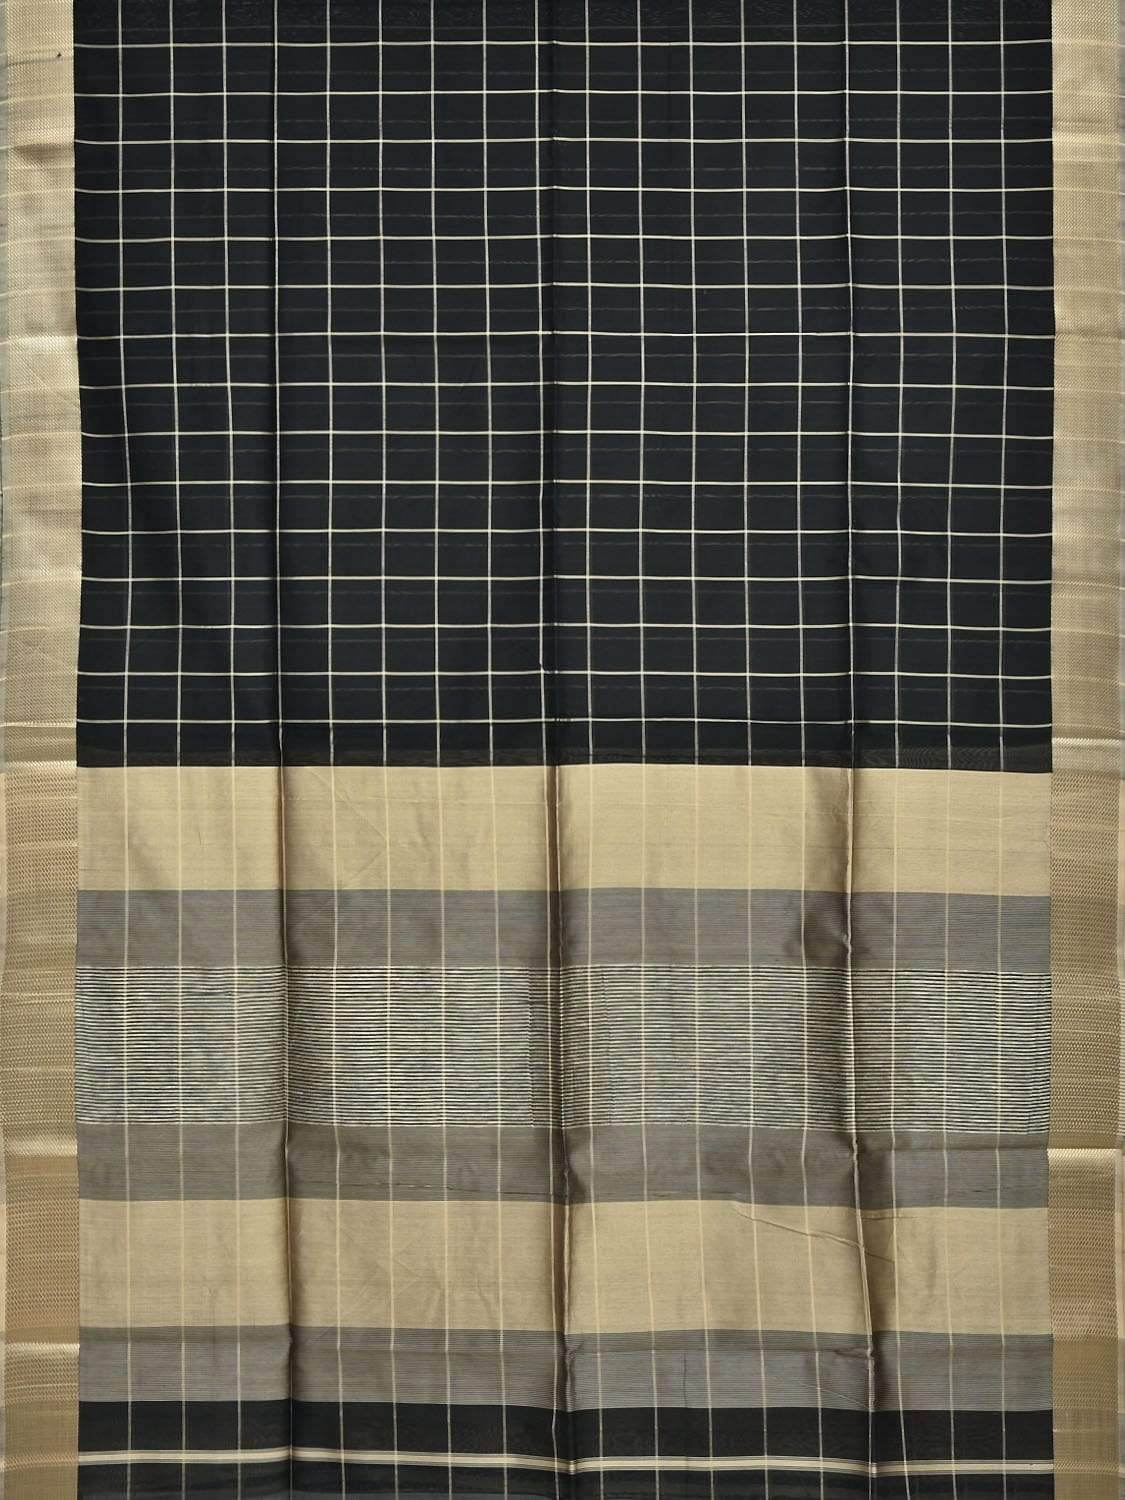 Black Maheshwari Cotton Silk Handloom Saree with Checks Design m0108